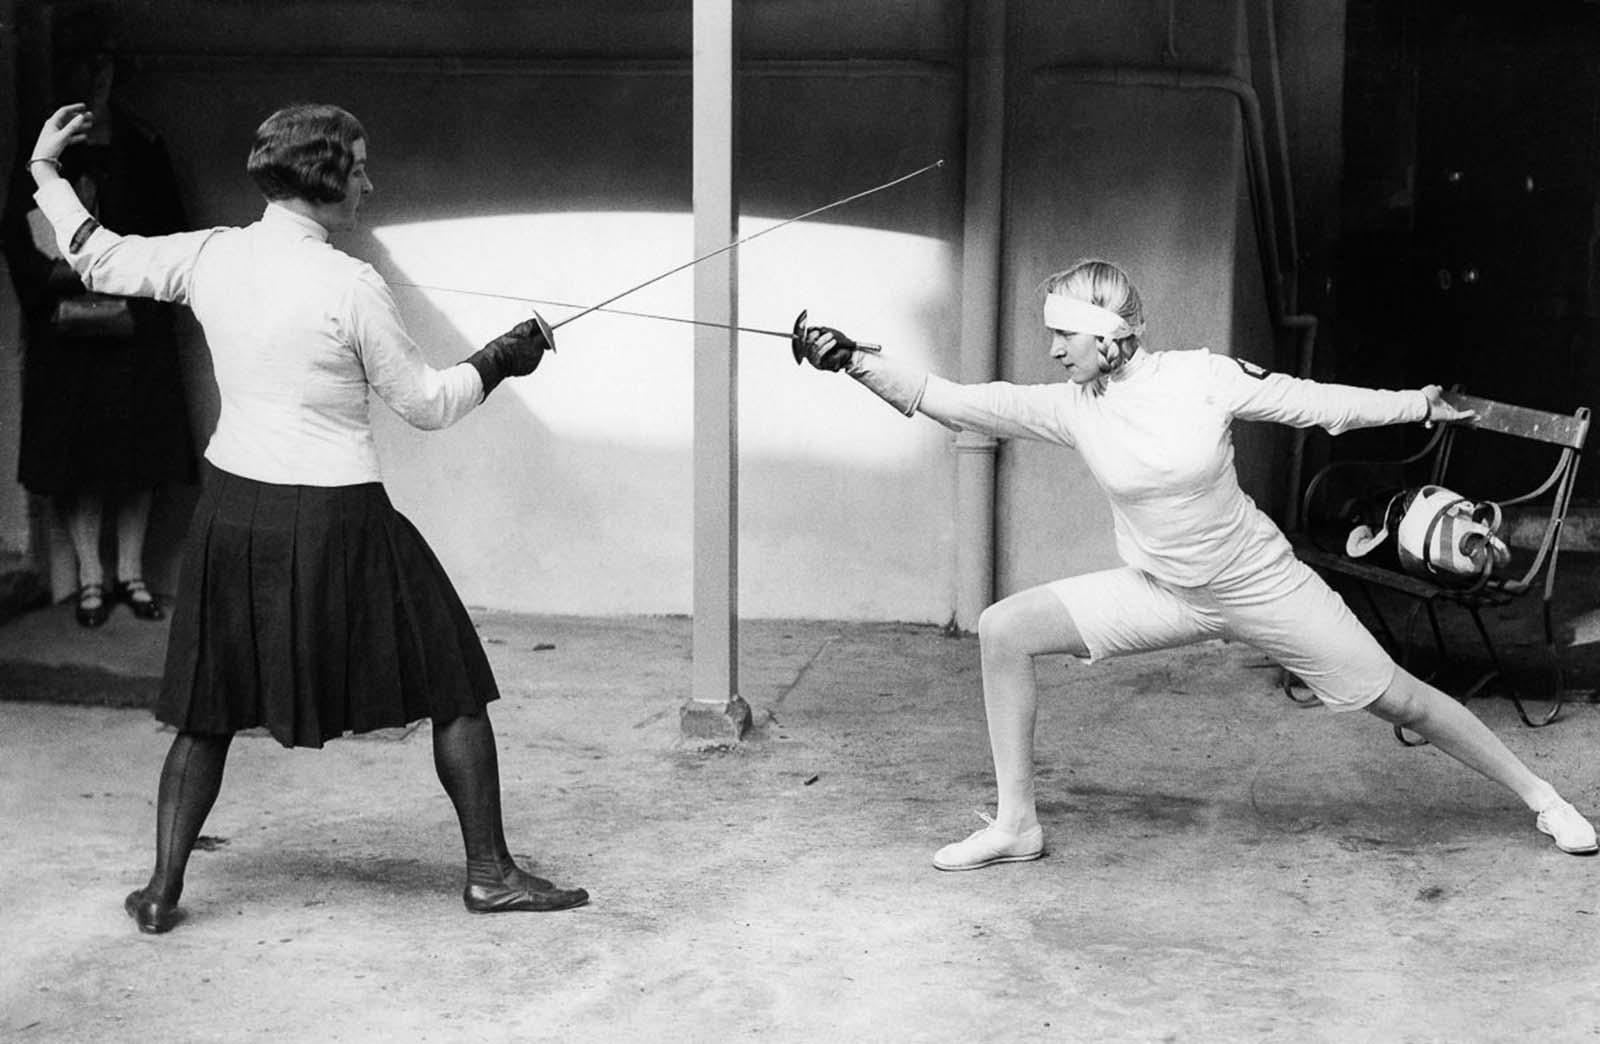 Her technique and talent were spectacular, according to fencing experts who have seen footage of her fencing. 1927.